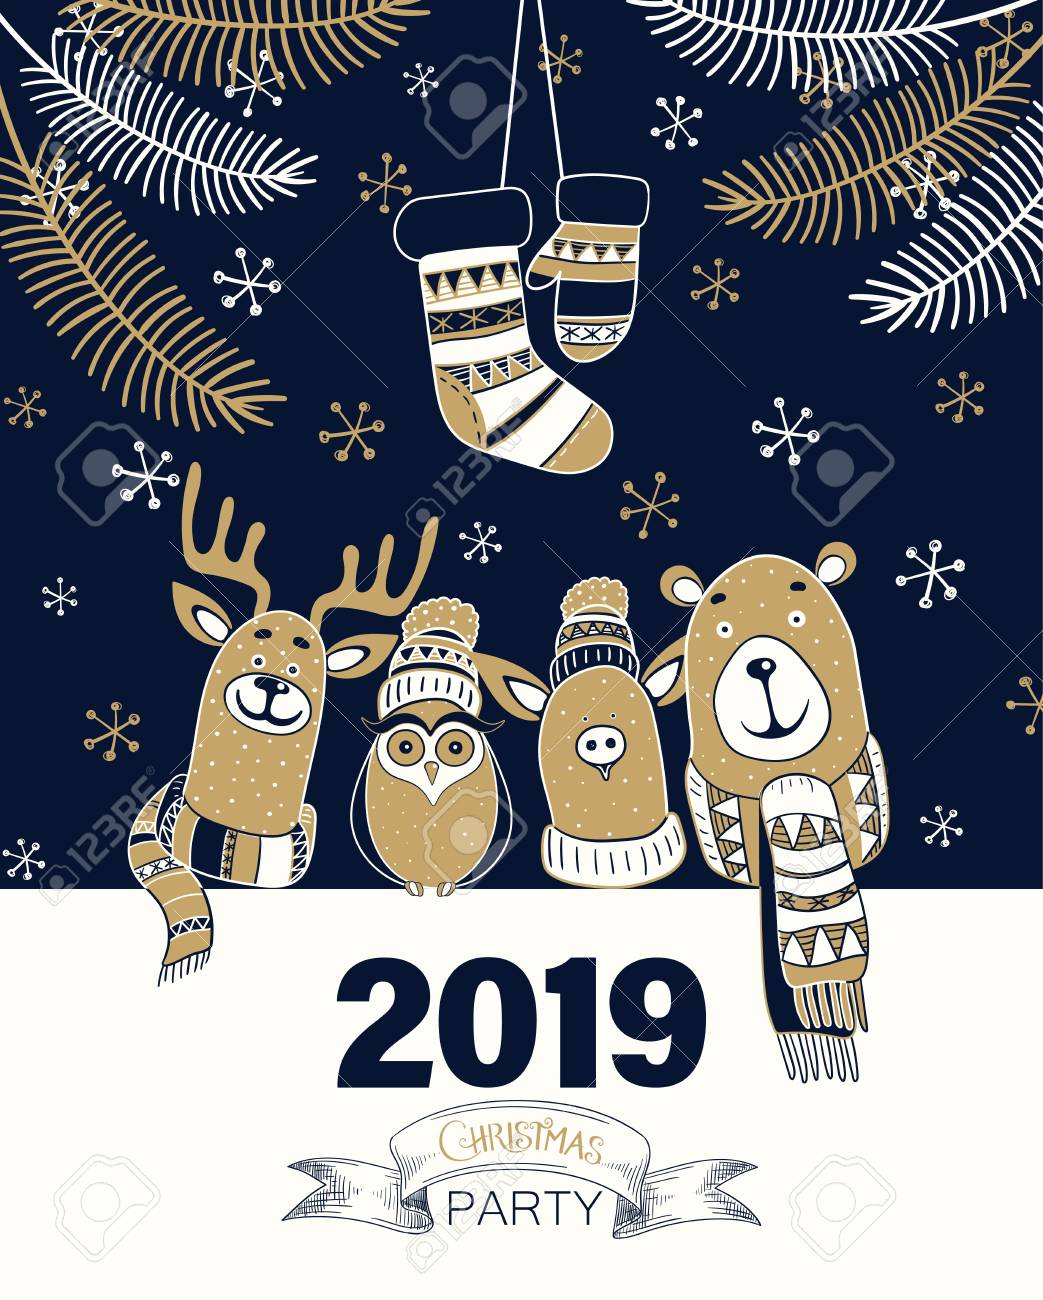 Christmas Party 2019 Clipart.Christmas Party 2019 Blue Poster Or Invitation With Cute Cartoon